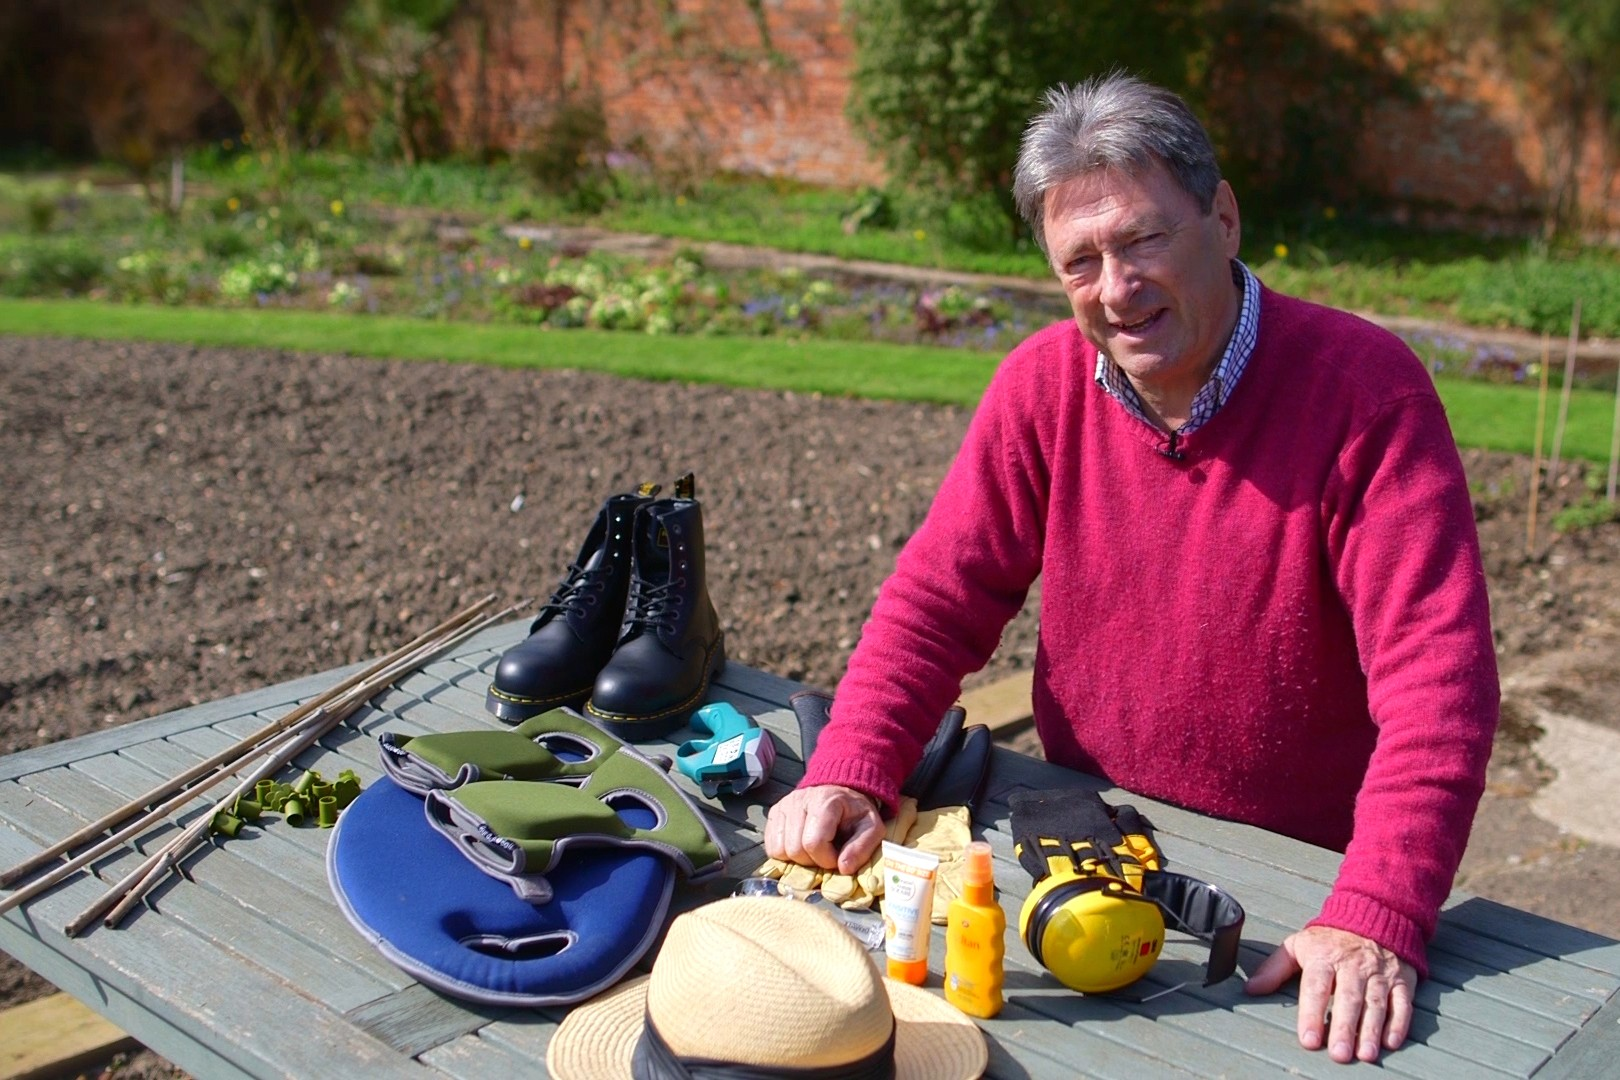 No Fuss Guide Protective gardening gear and equipment